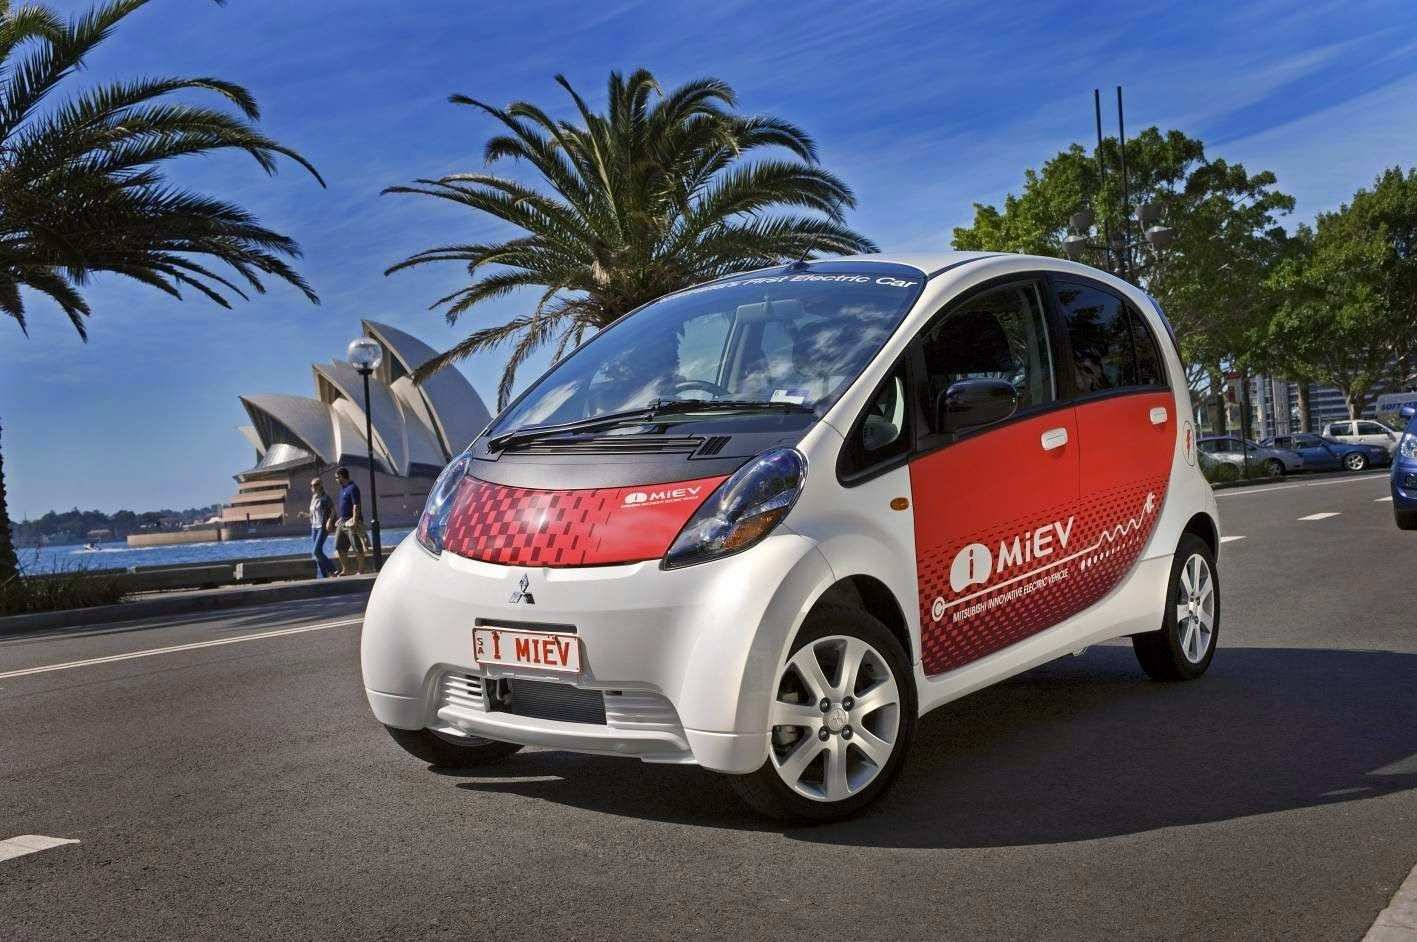 37 The Best 2020 Mitsubishi I MIEV Price And Release Date